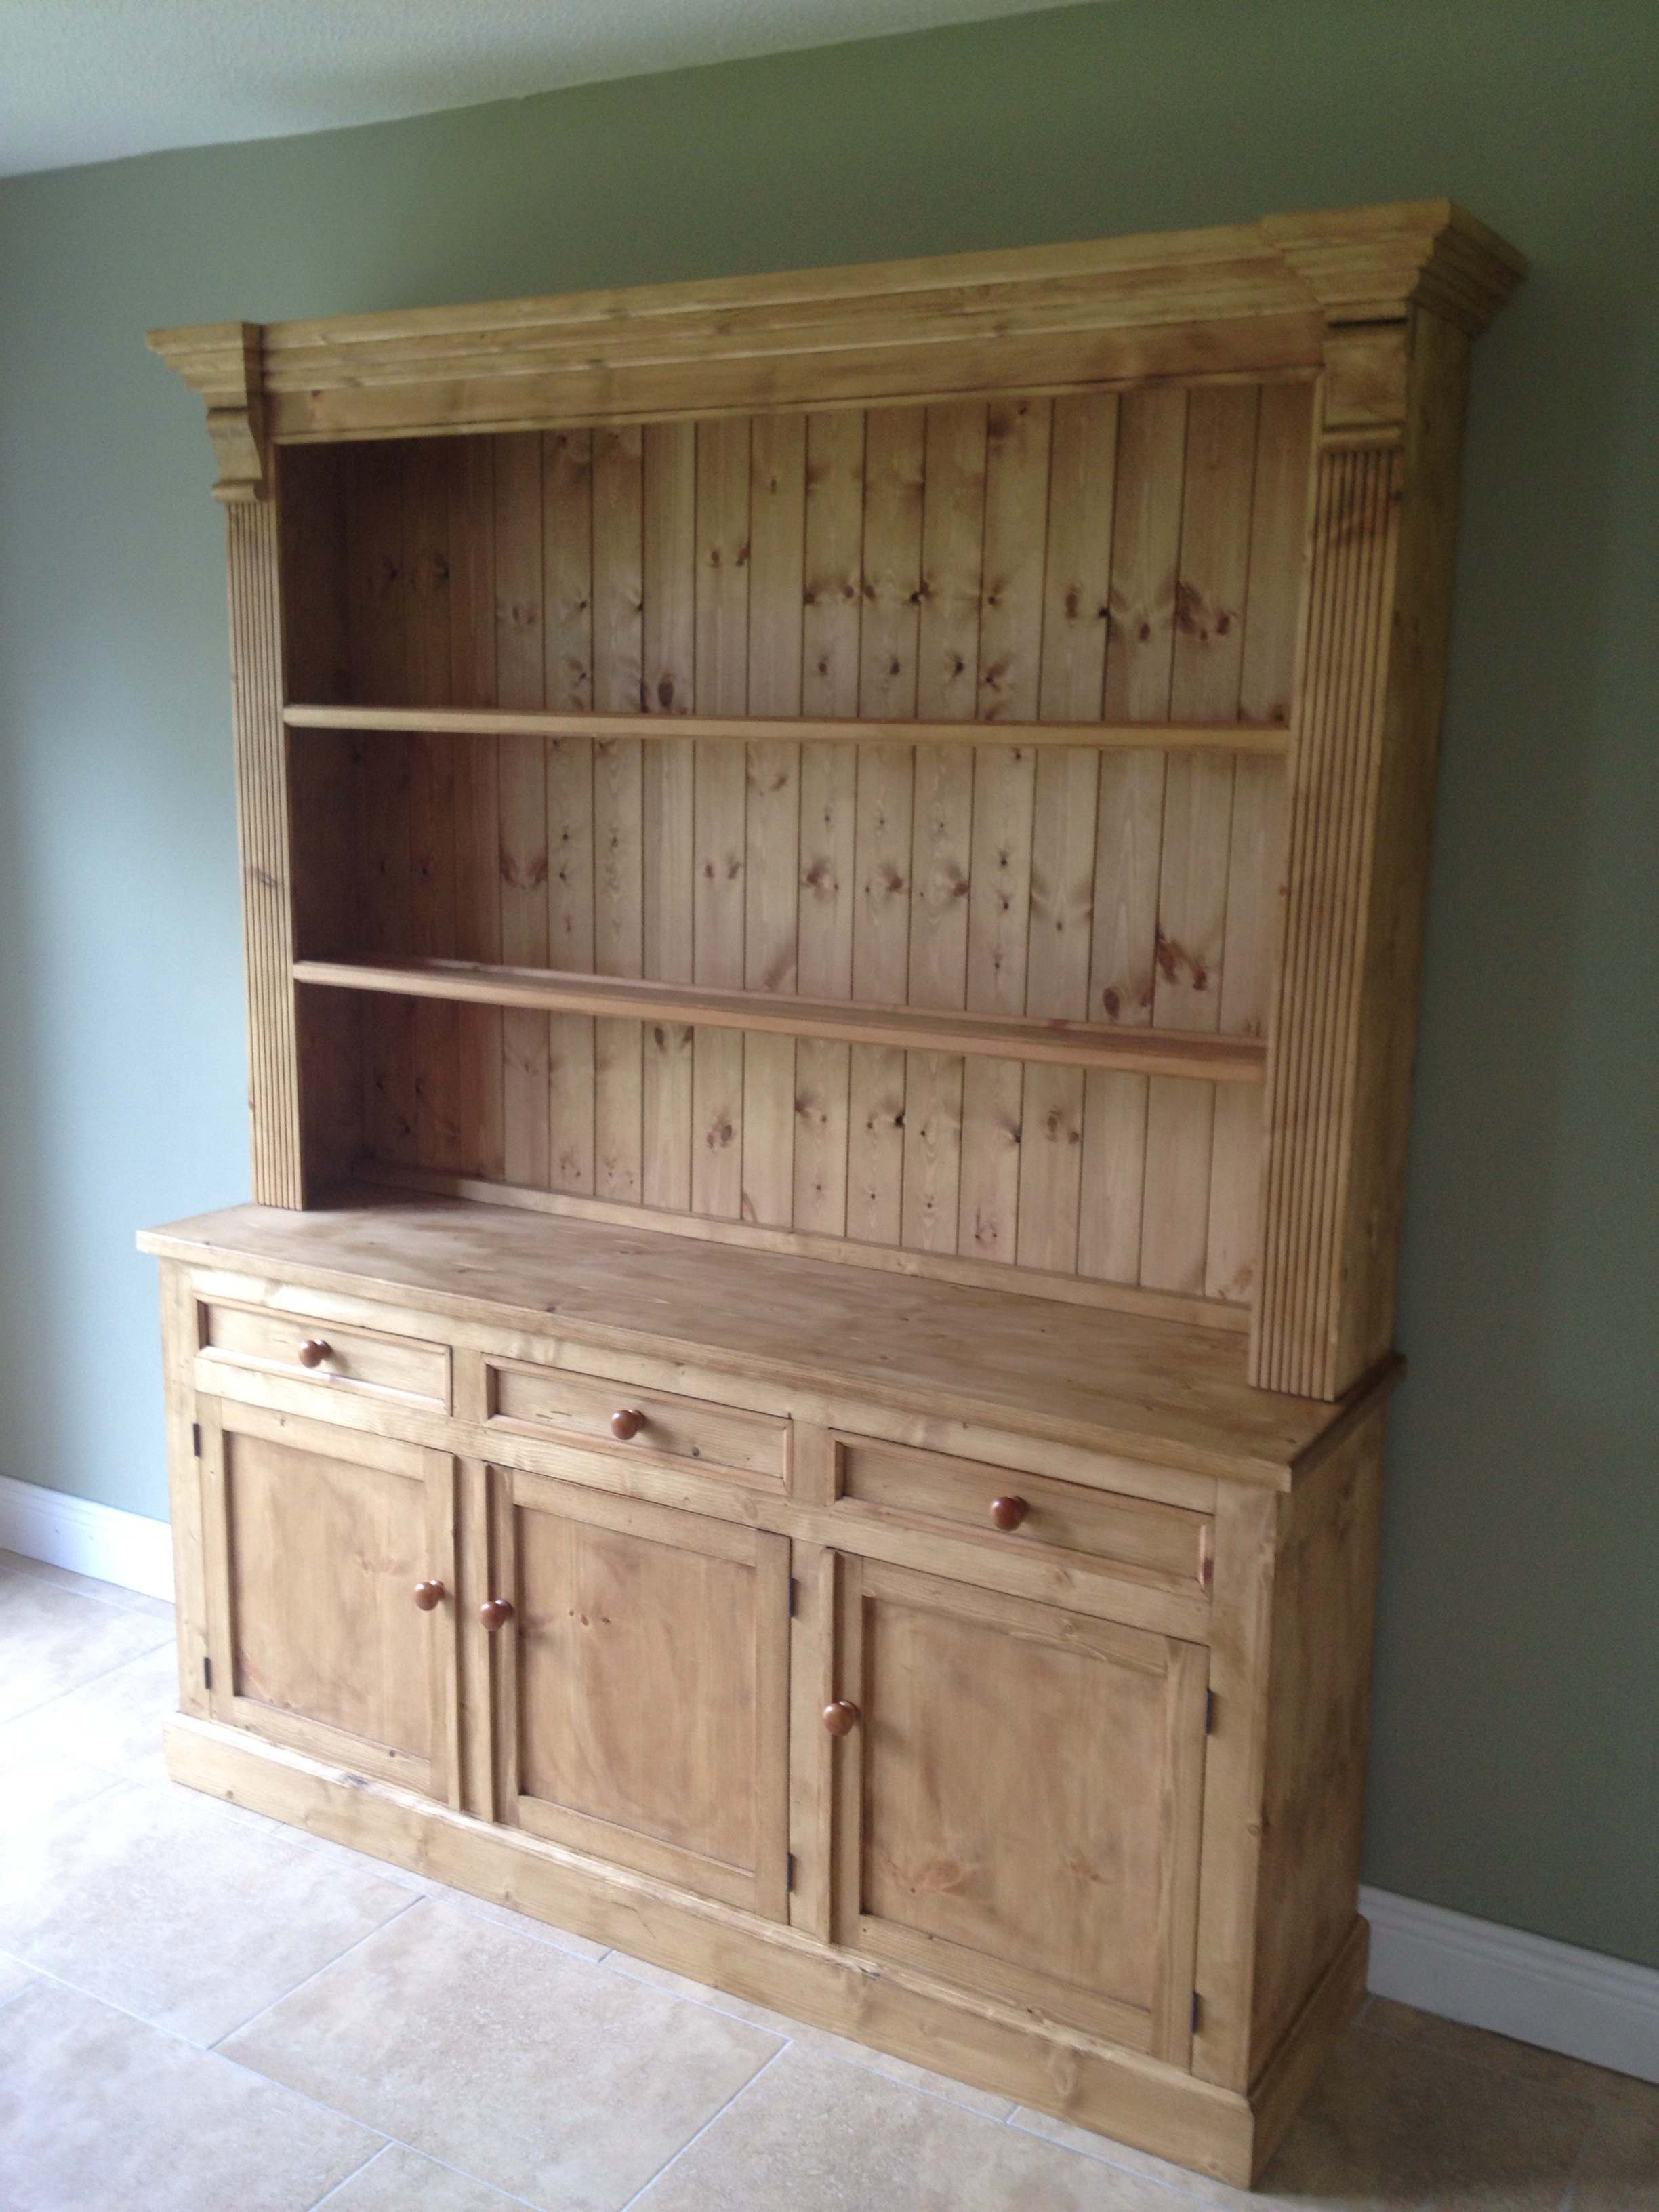 Irish made pine furniture any design and finish we can for Traditional kitchen dresser